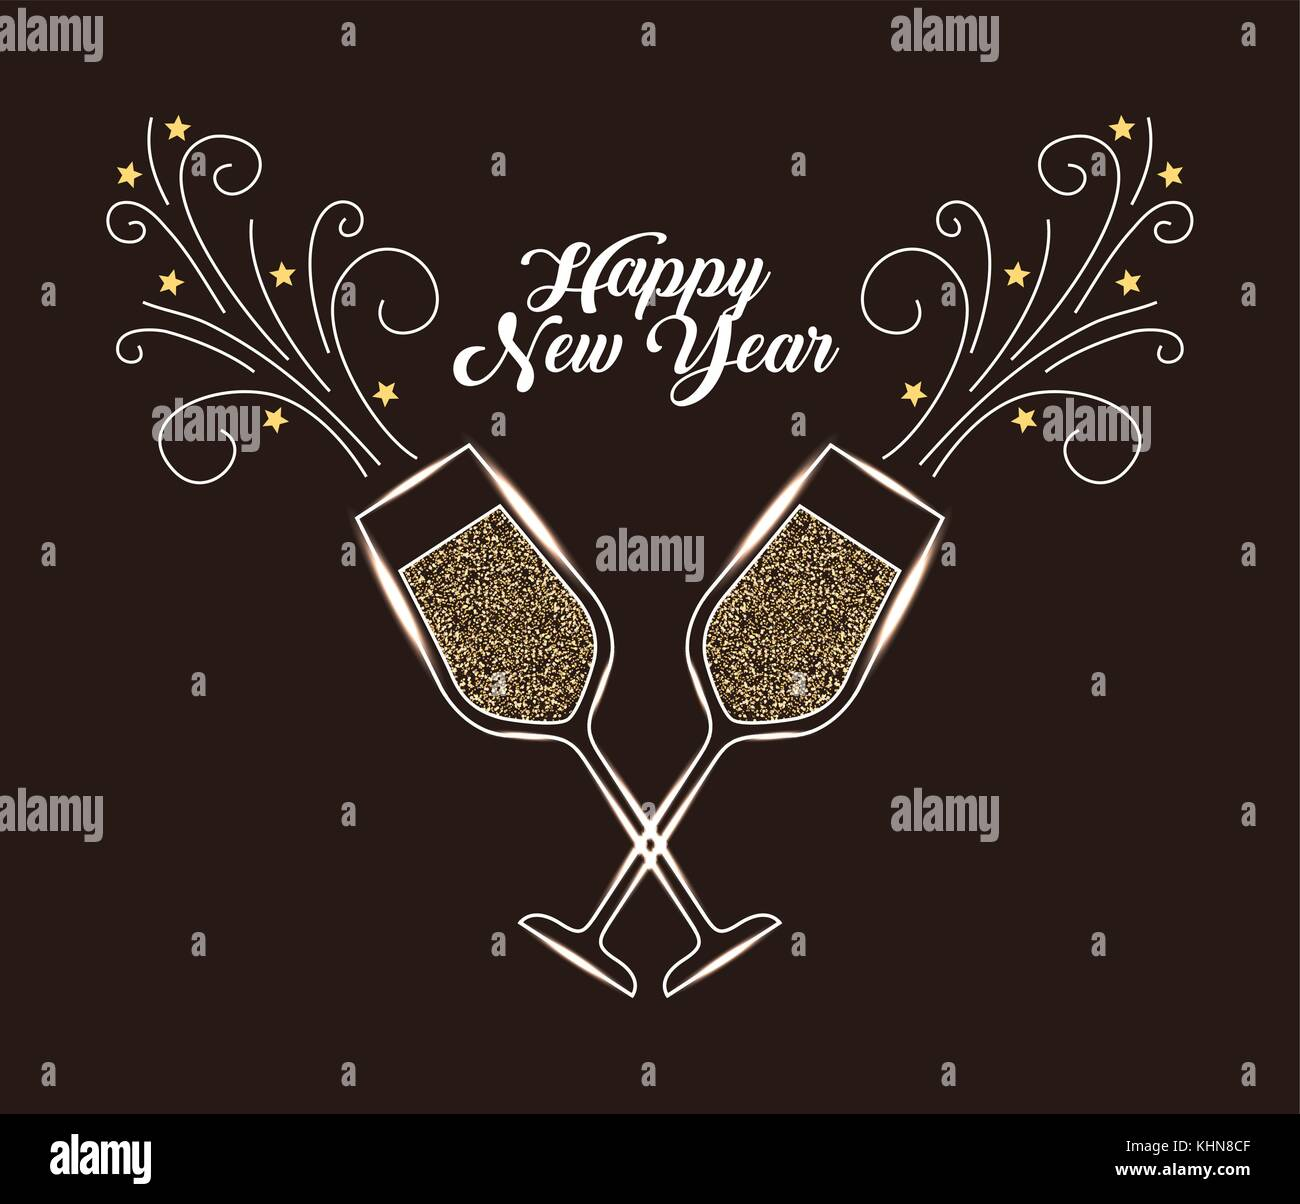 happy new year pair of champagne glass cheers drink celebration